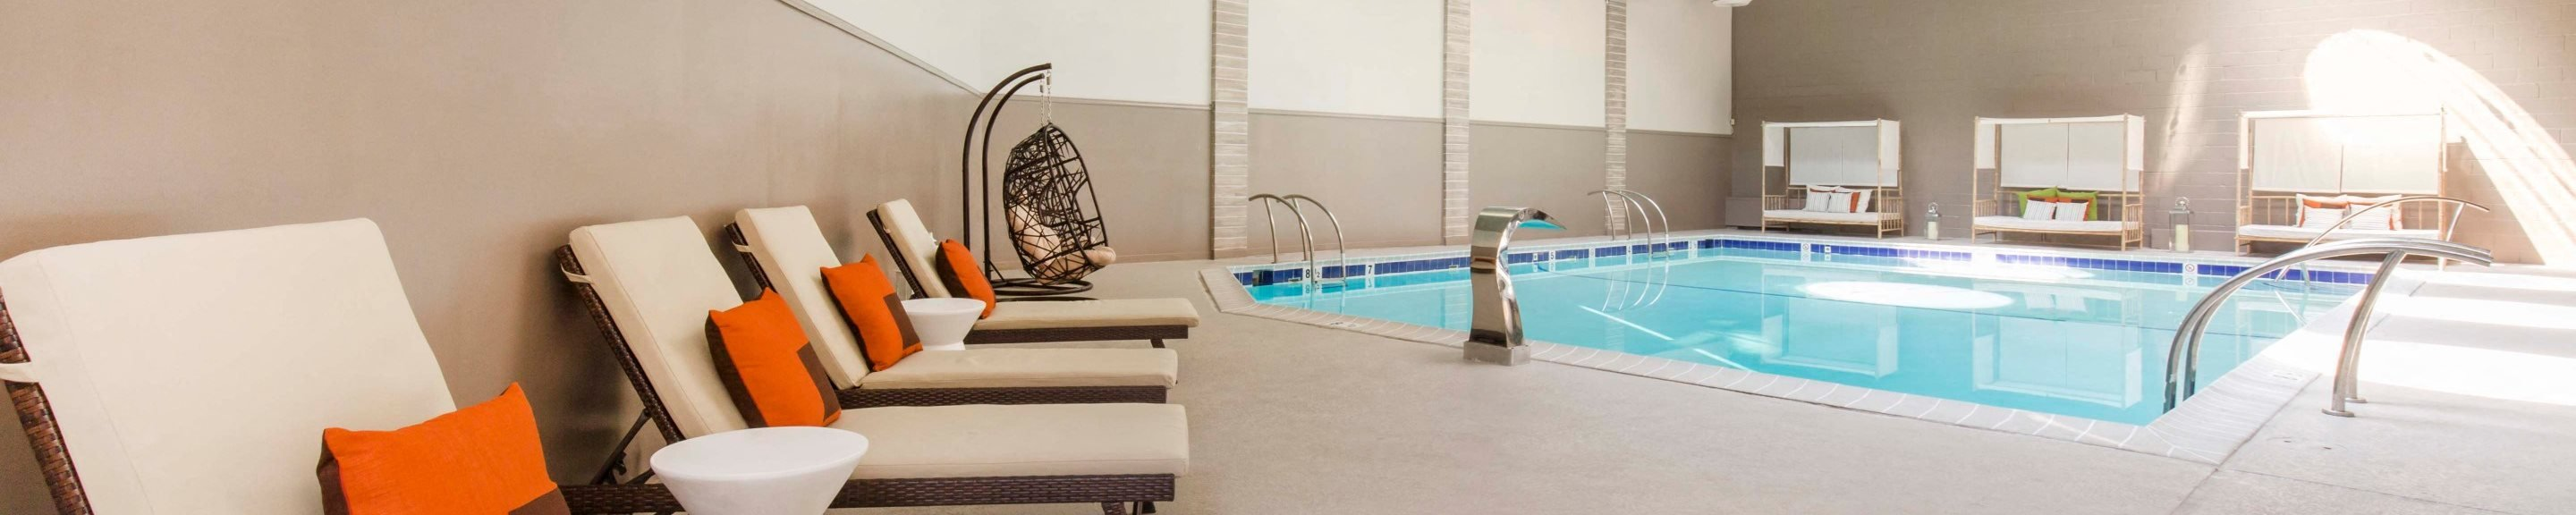 Indoor swimming pool with tan and white lounge chairs with orange accent pillows and natural sunlight coming through the ceiling